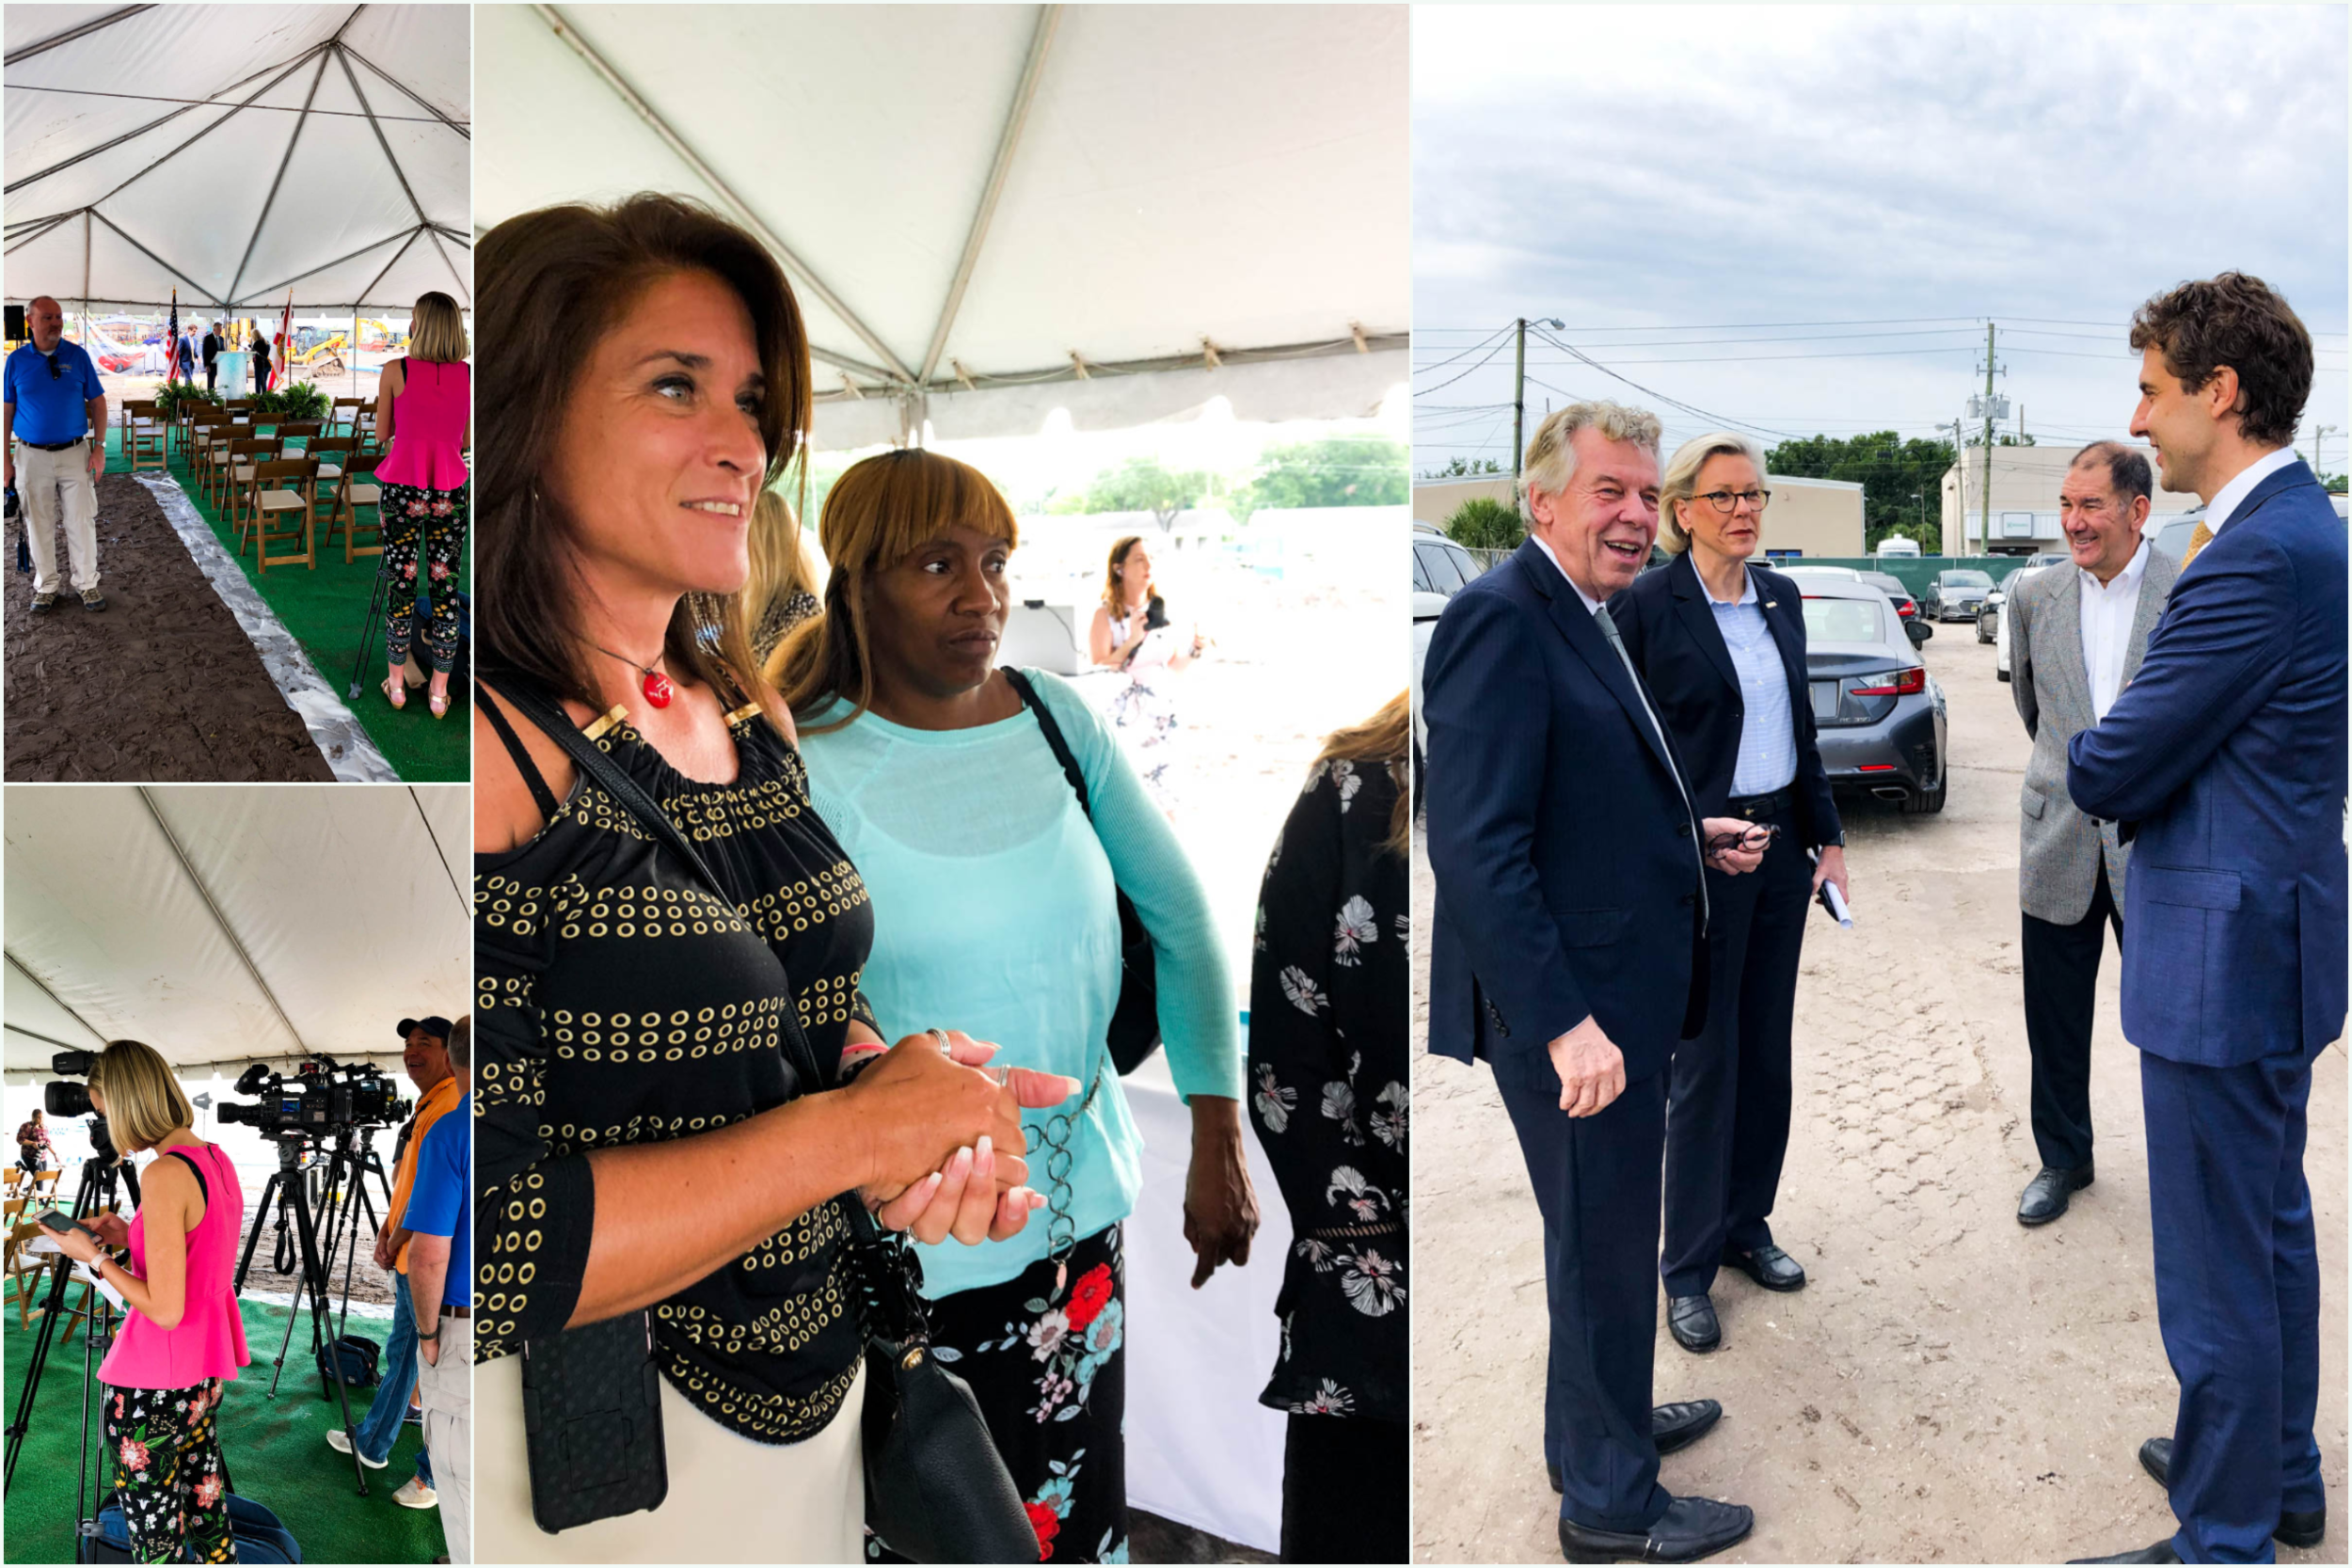 Featured: (Middle) Barr & Barr's Gina and Vicky; (Right) Bromley Companies Chief CEO's William and Nick Haines and Tampa Bay's Mayor Jane Castor